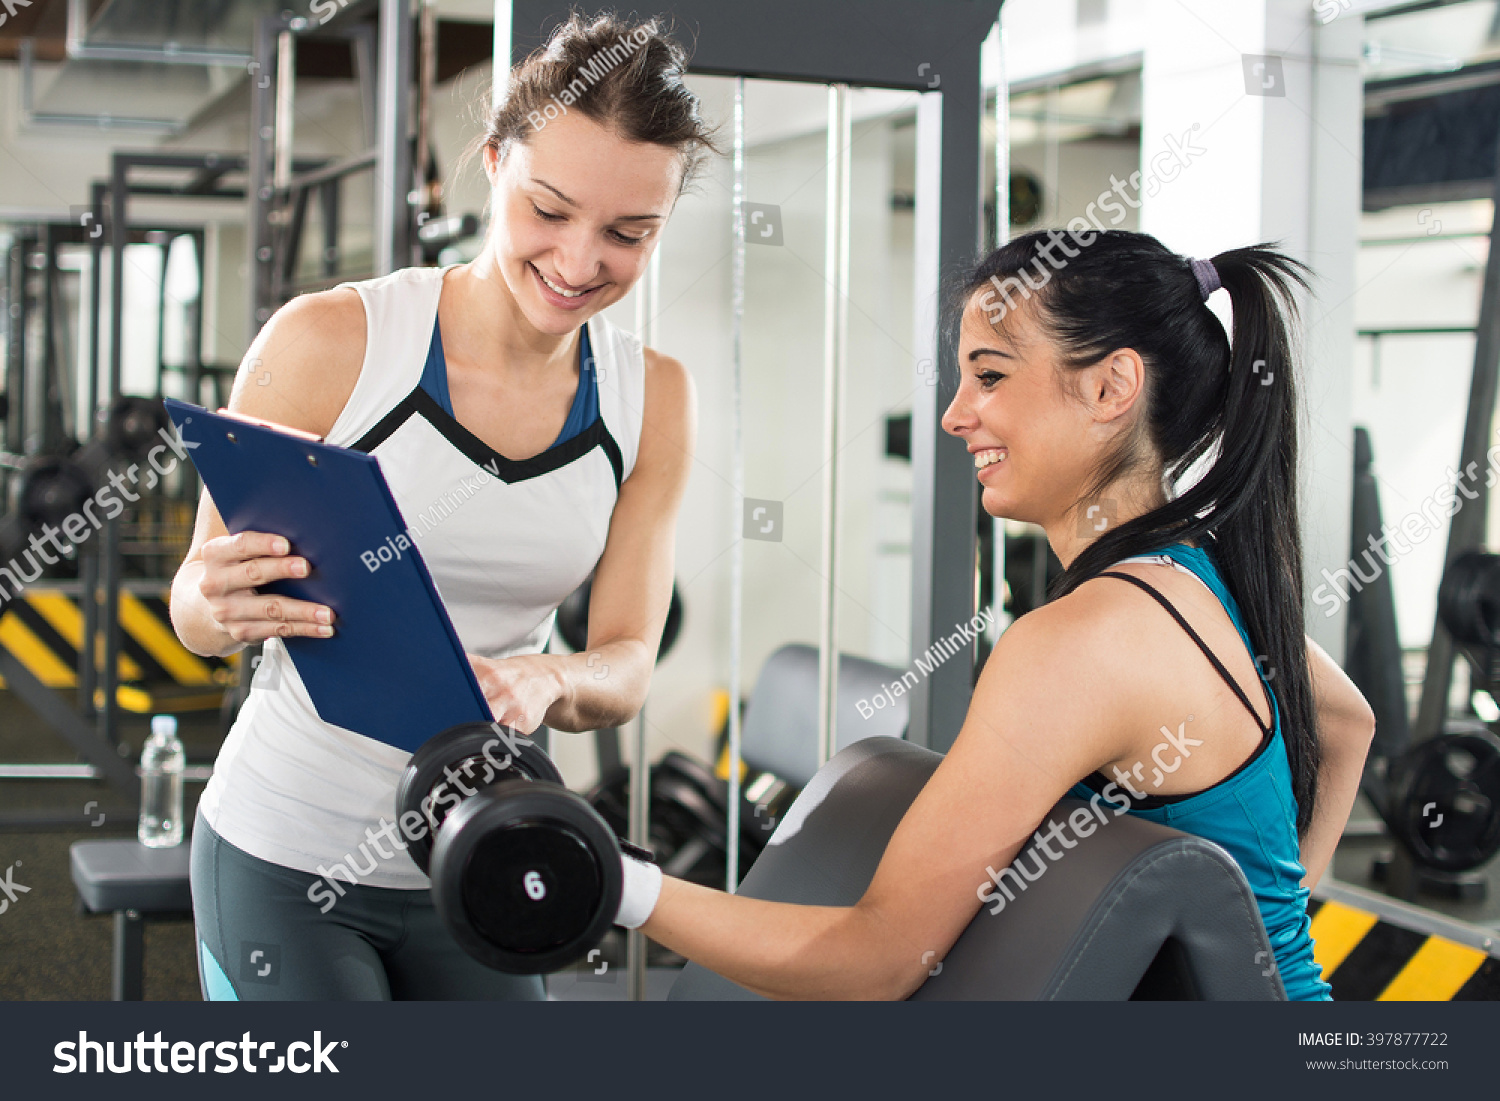 dating a female personal trainer Female personal trainers personal trainer network is the place to find female personal trainers in chicago, il and the surrounding suburbs.